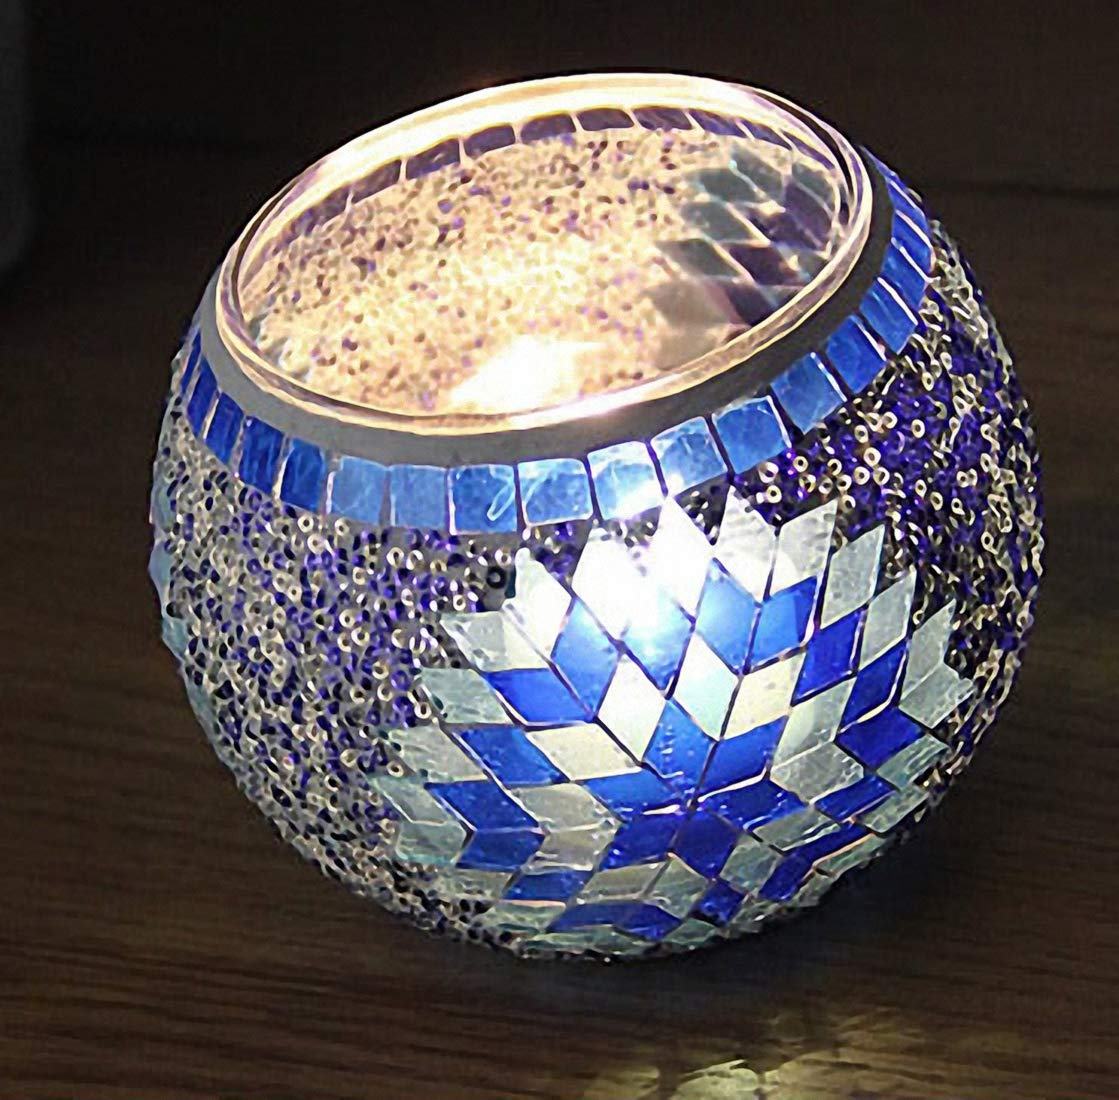 European Vintage Mosaic Glass Led Candle Holders Handmade Geometric Mosaic Glass Pieces Bowl Candleholders Flameless Battery Glittery Sequins Candlesticks Candle Lamps for Wedding Home Party Blue